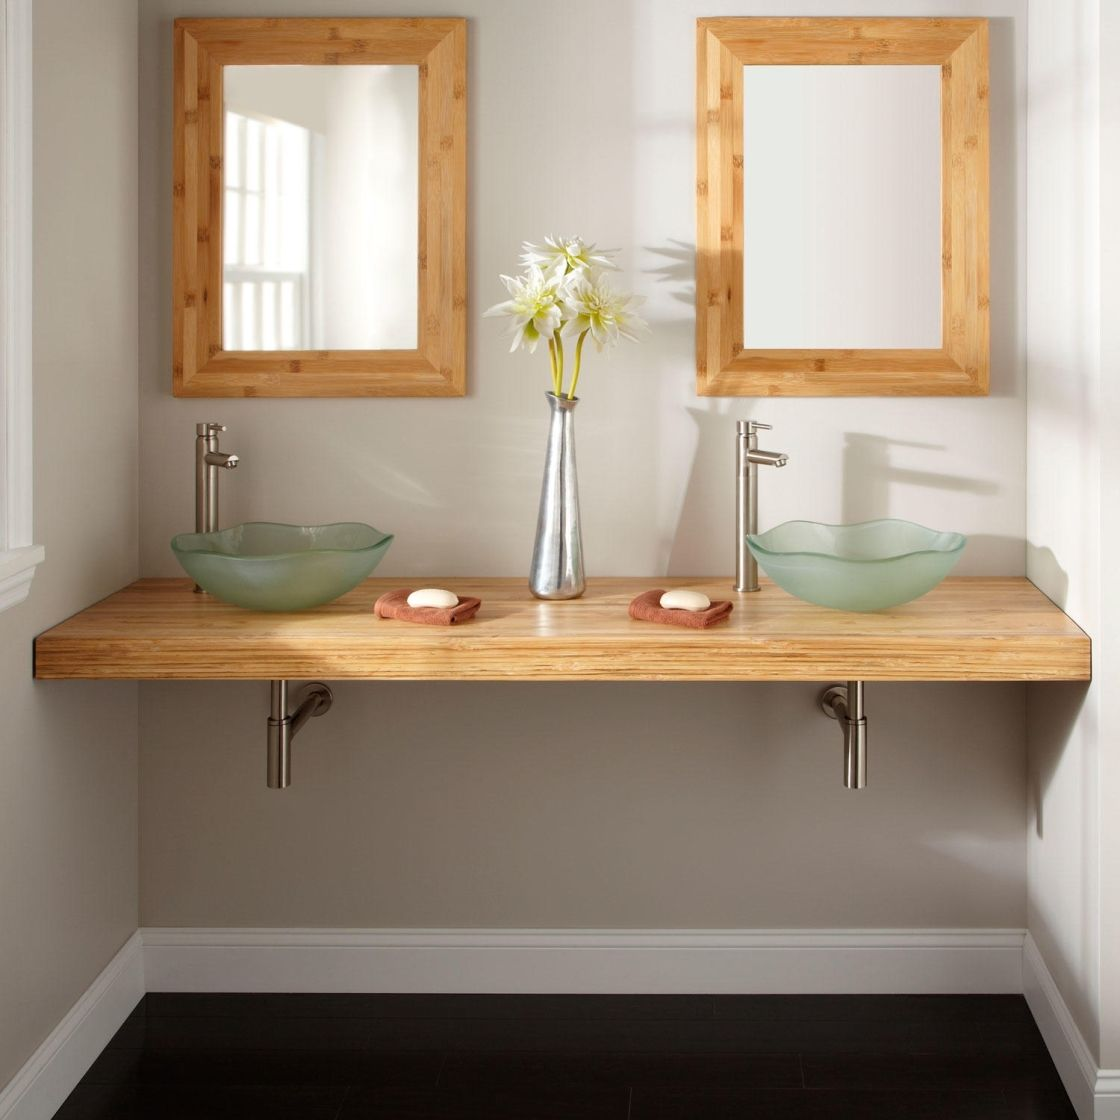 Diy custom floating bathroom vanity design in solid for Bamboo bathroom design